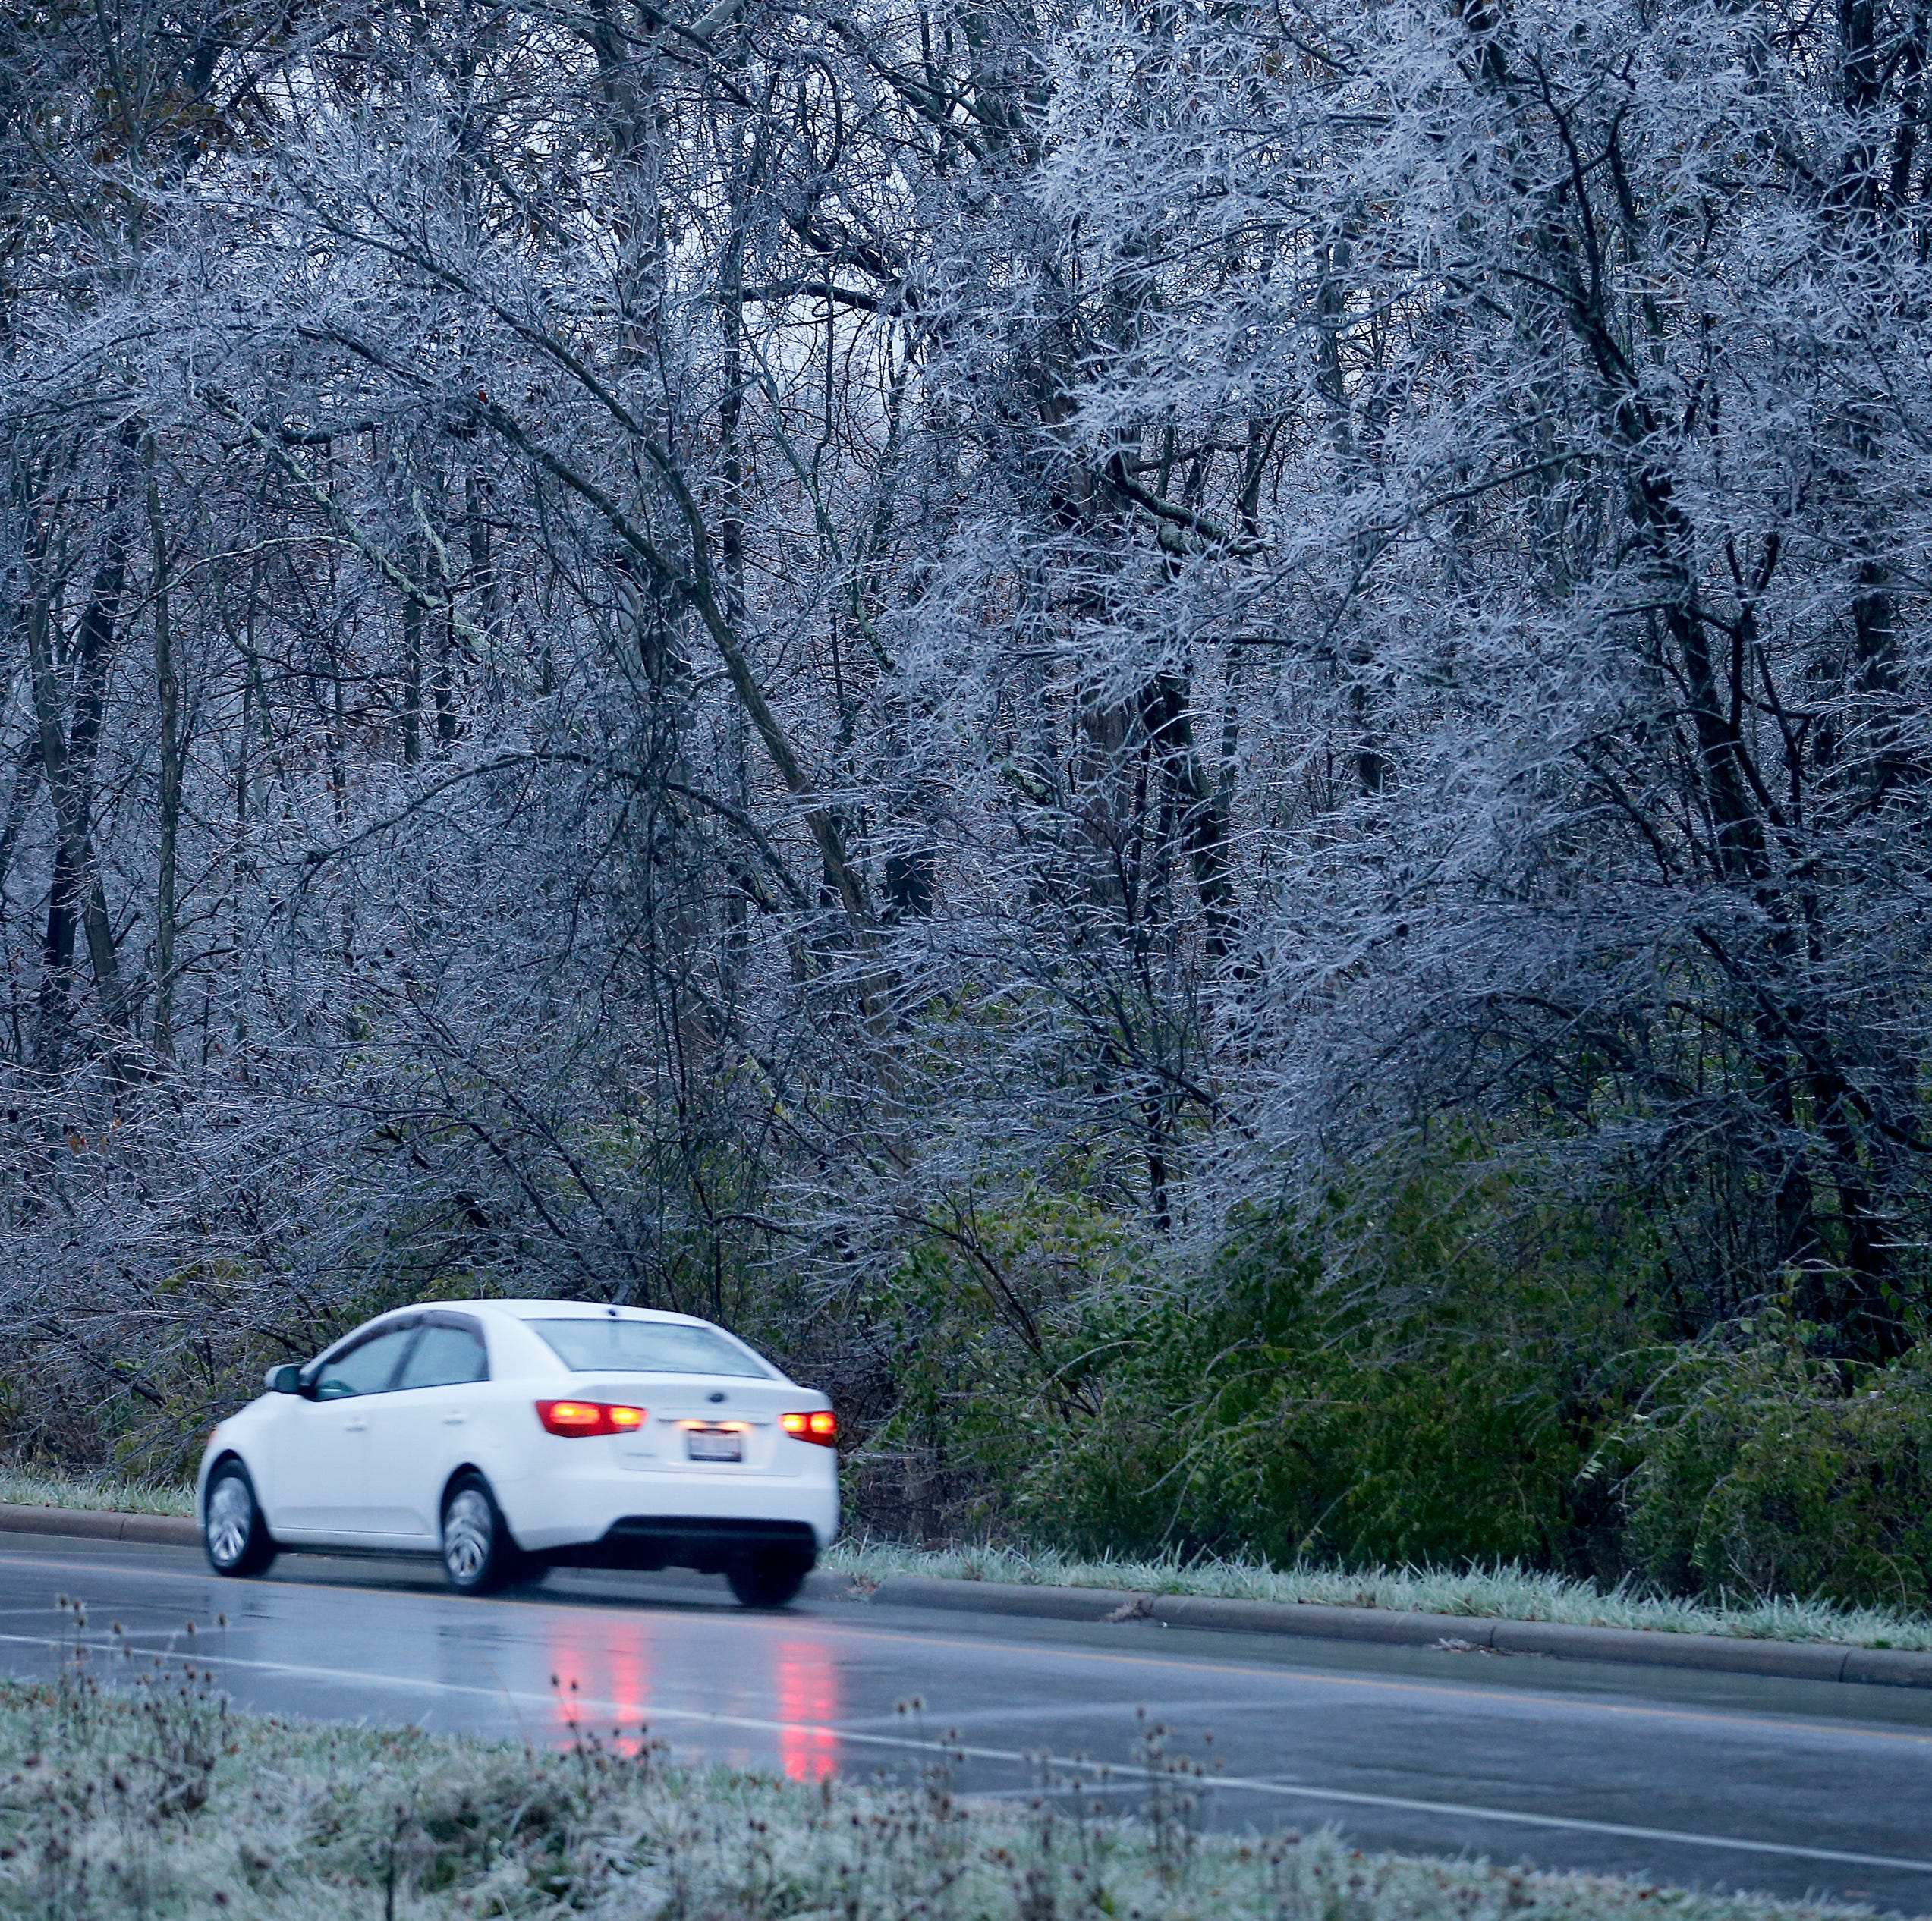 Ice storm: Nearly 50K in dark 12 hours plus after system swept across Cincinnati region